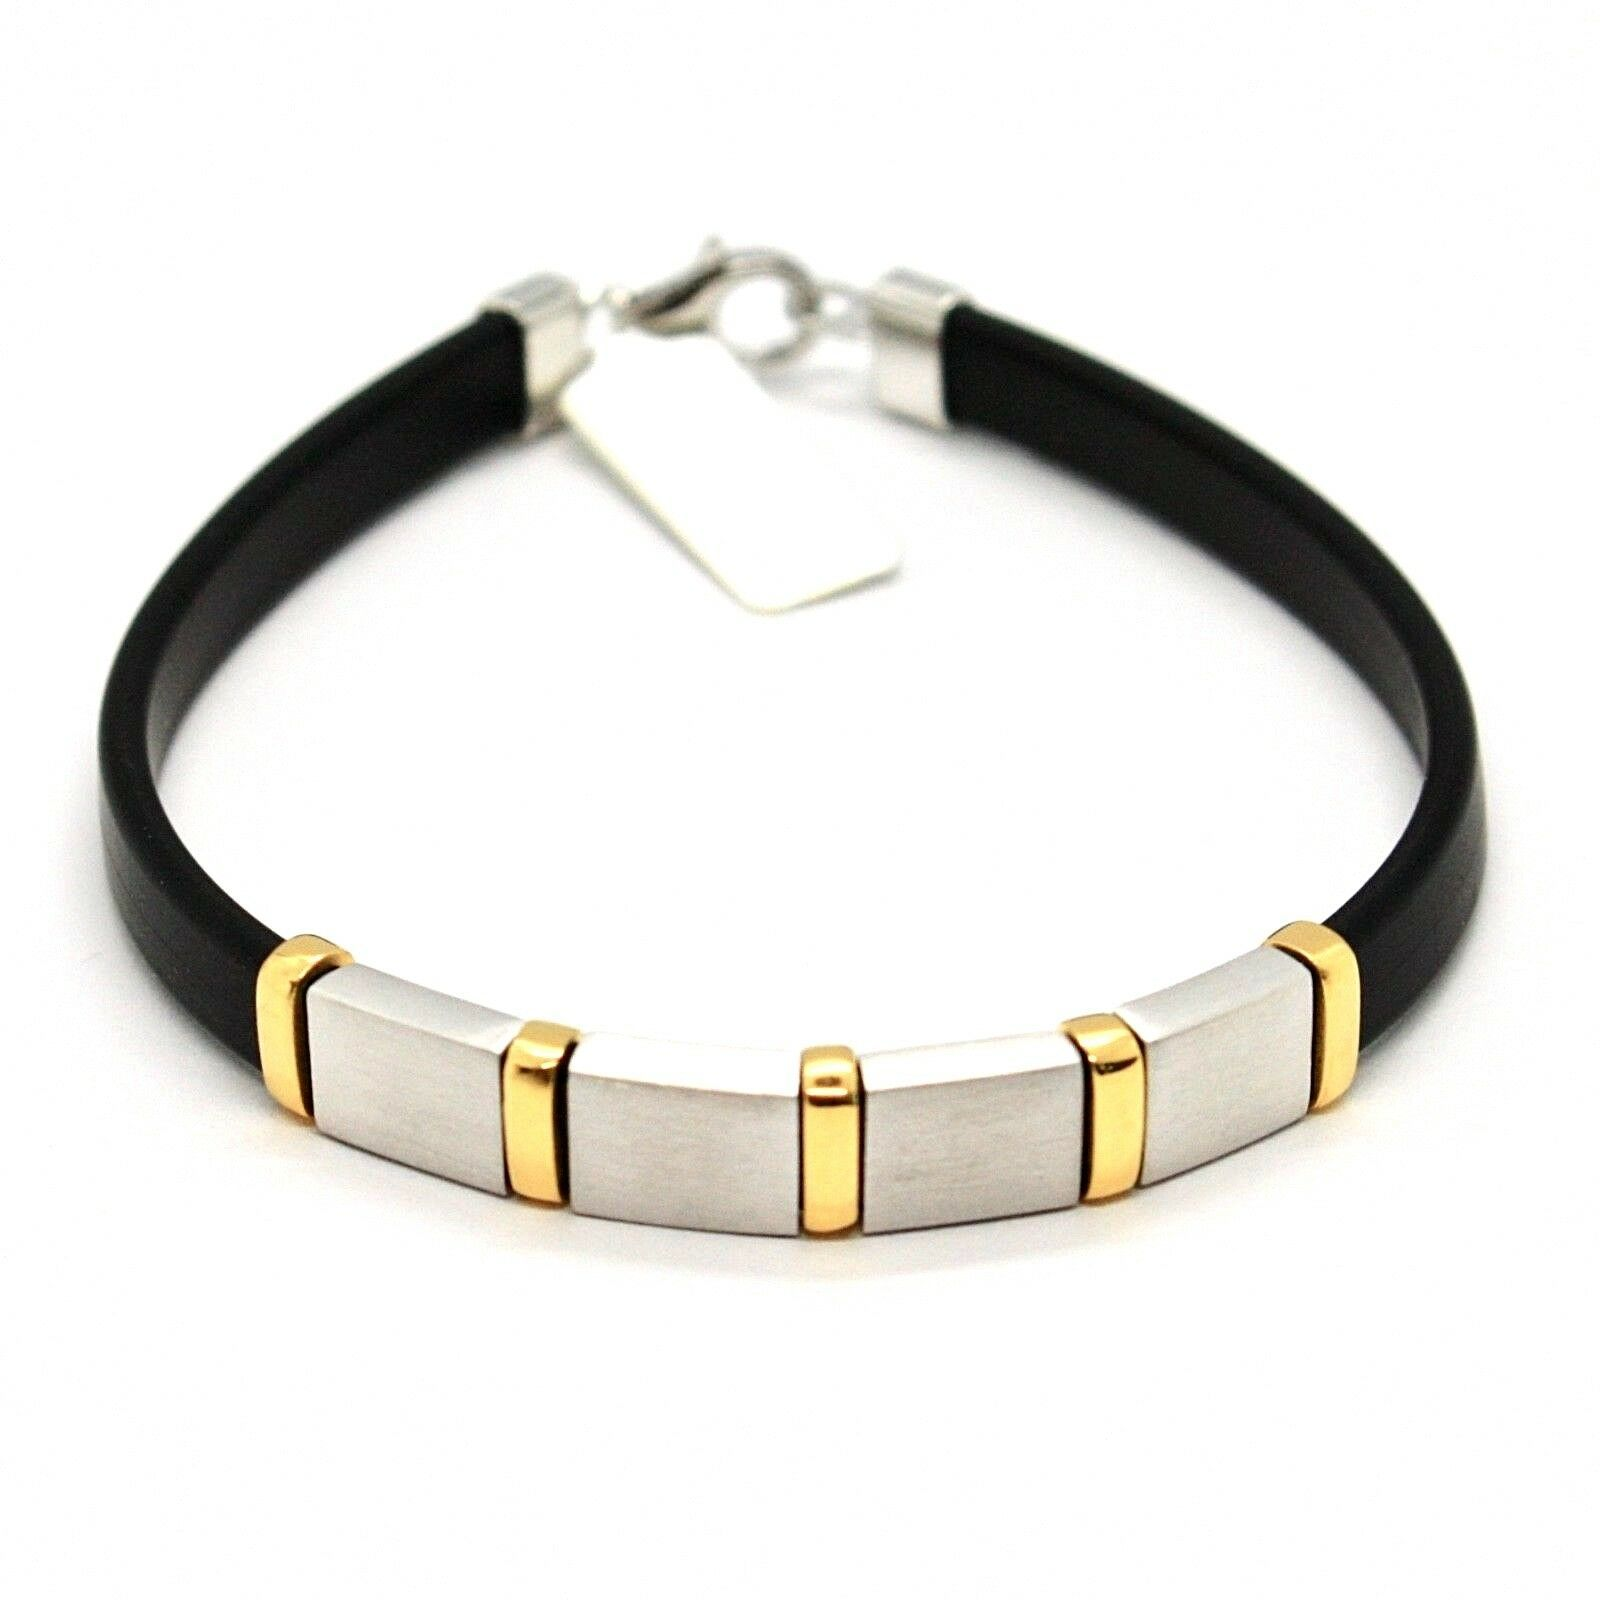 SILVER 925 BRACELET RHODIUM AND LAMINATE YELLOW GOLD WITH RUBBER 20 CM